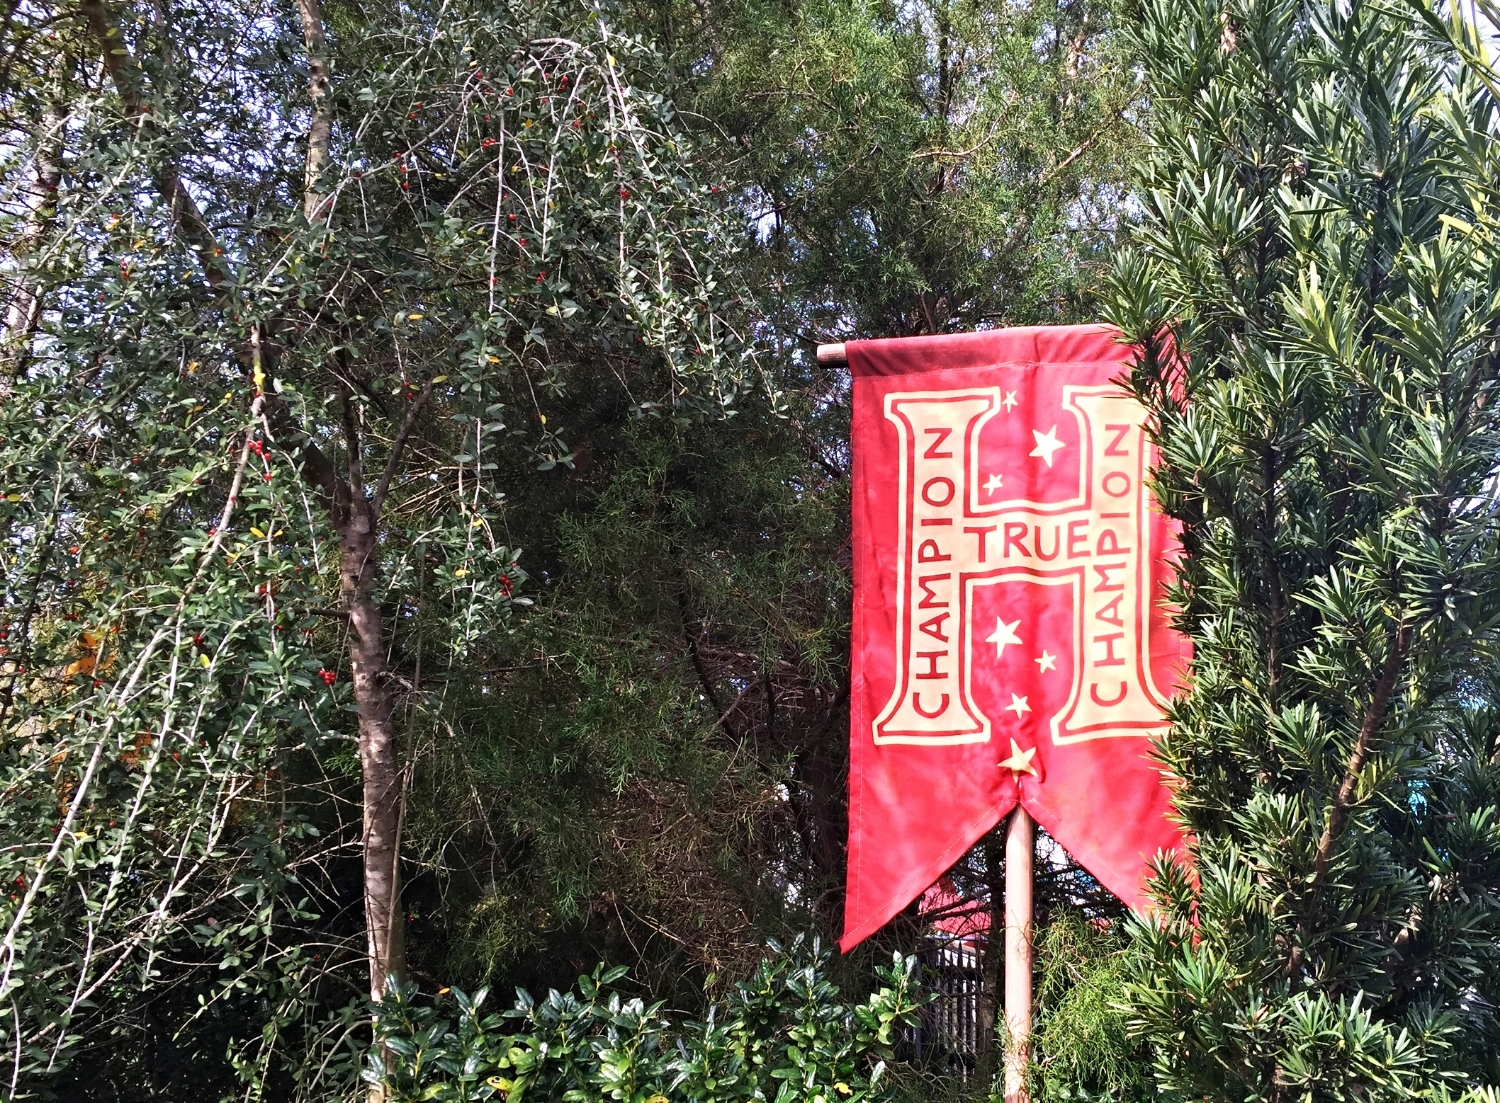 Banners All Along the Queue for Dragon Challenge